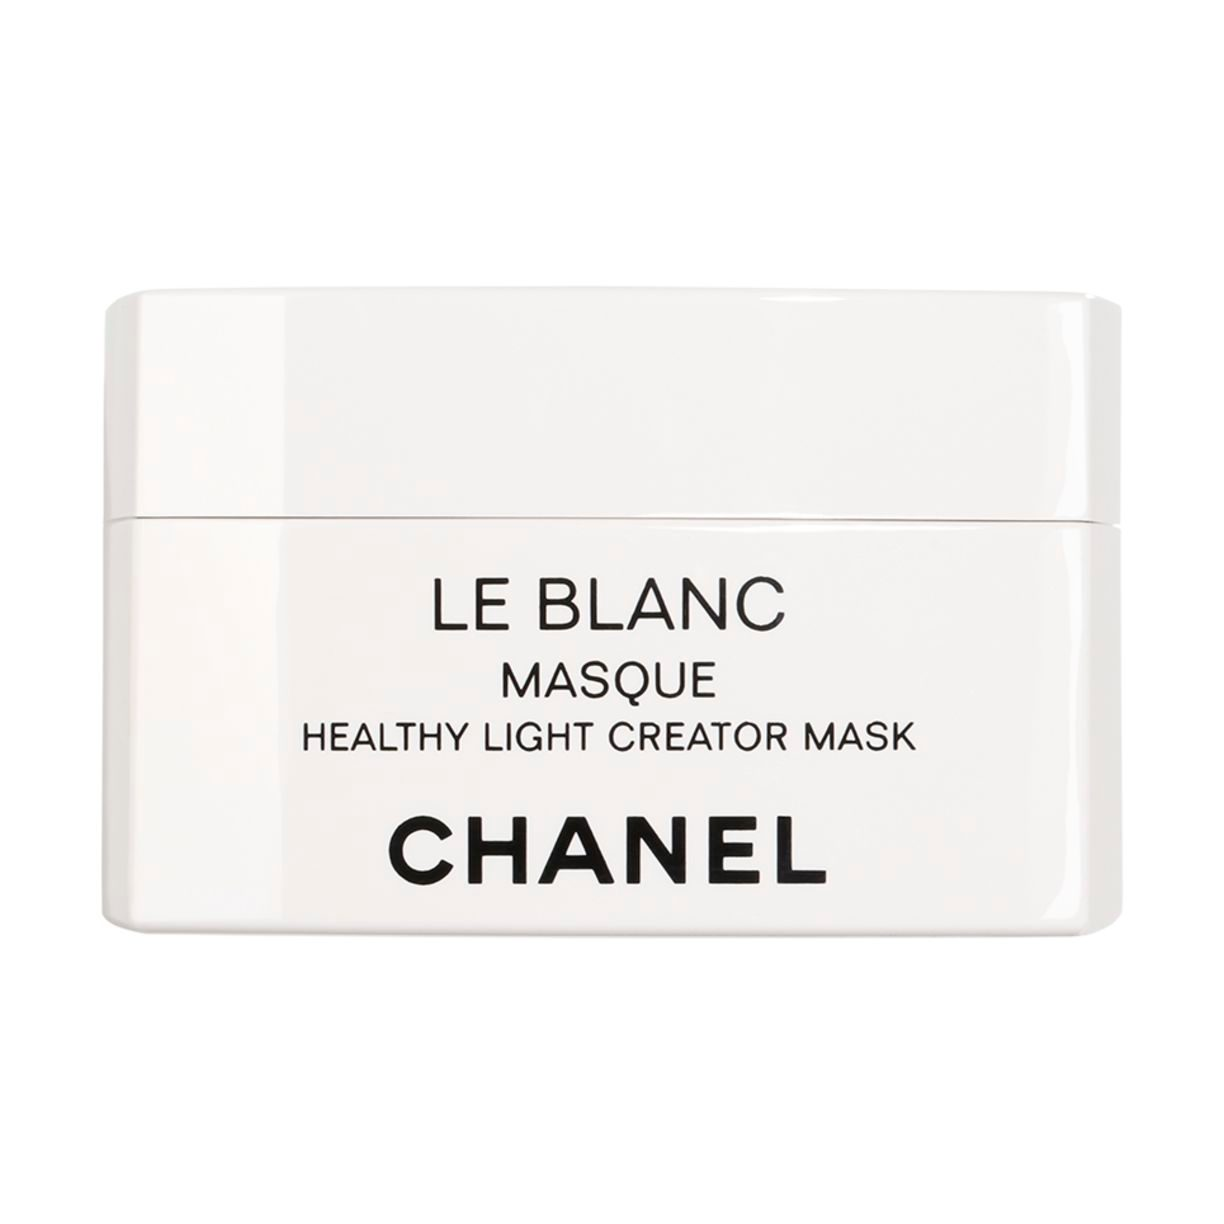 LE BLANC MASQUE HEALTHY LIGHT CREATOR MASK REVITALISING - BRIGHTENING - RESTORING